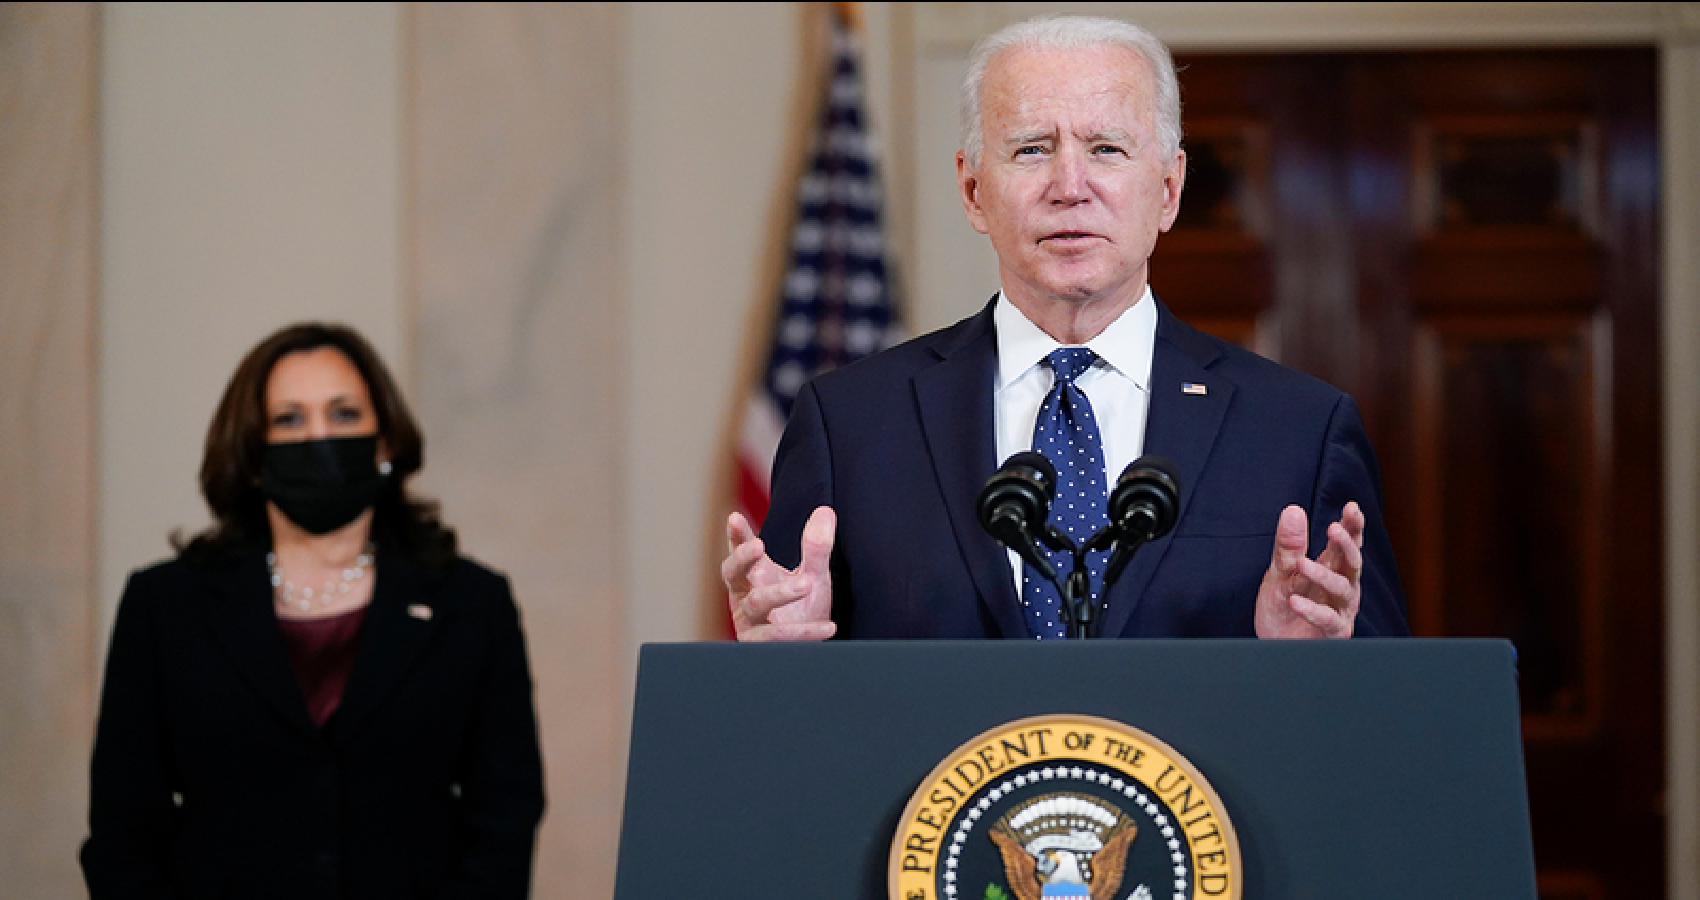 The Biden Has Stronger Support As He Nears 100-Days In Office